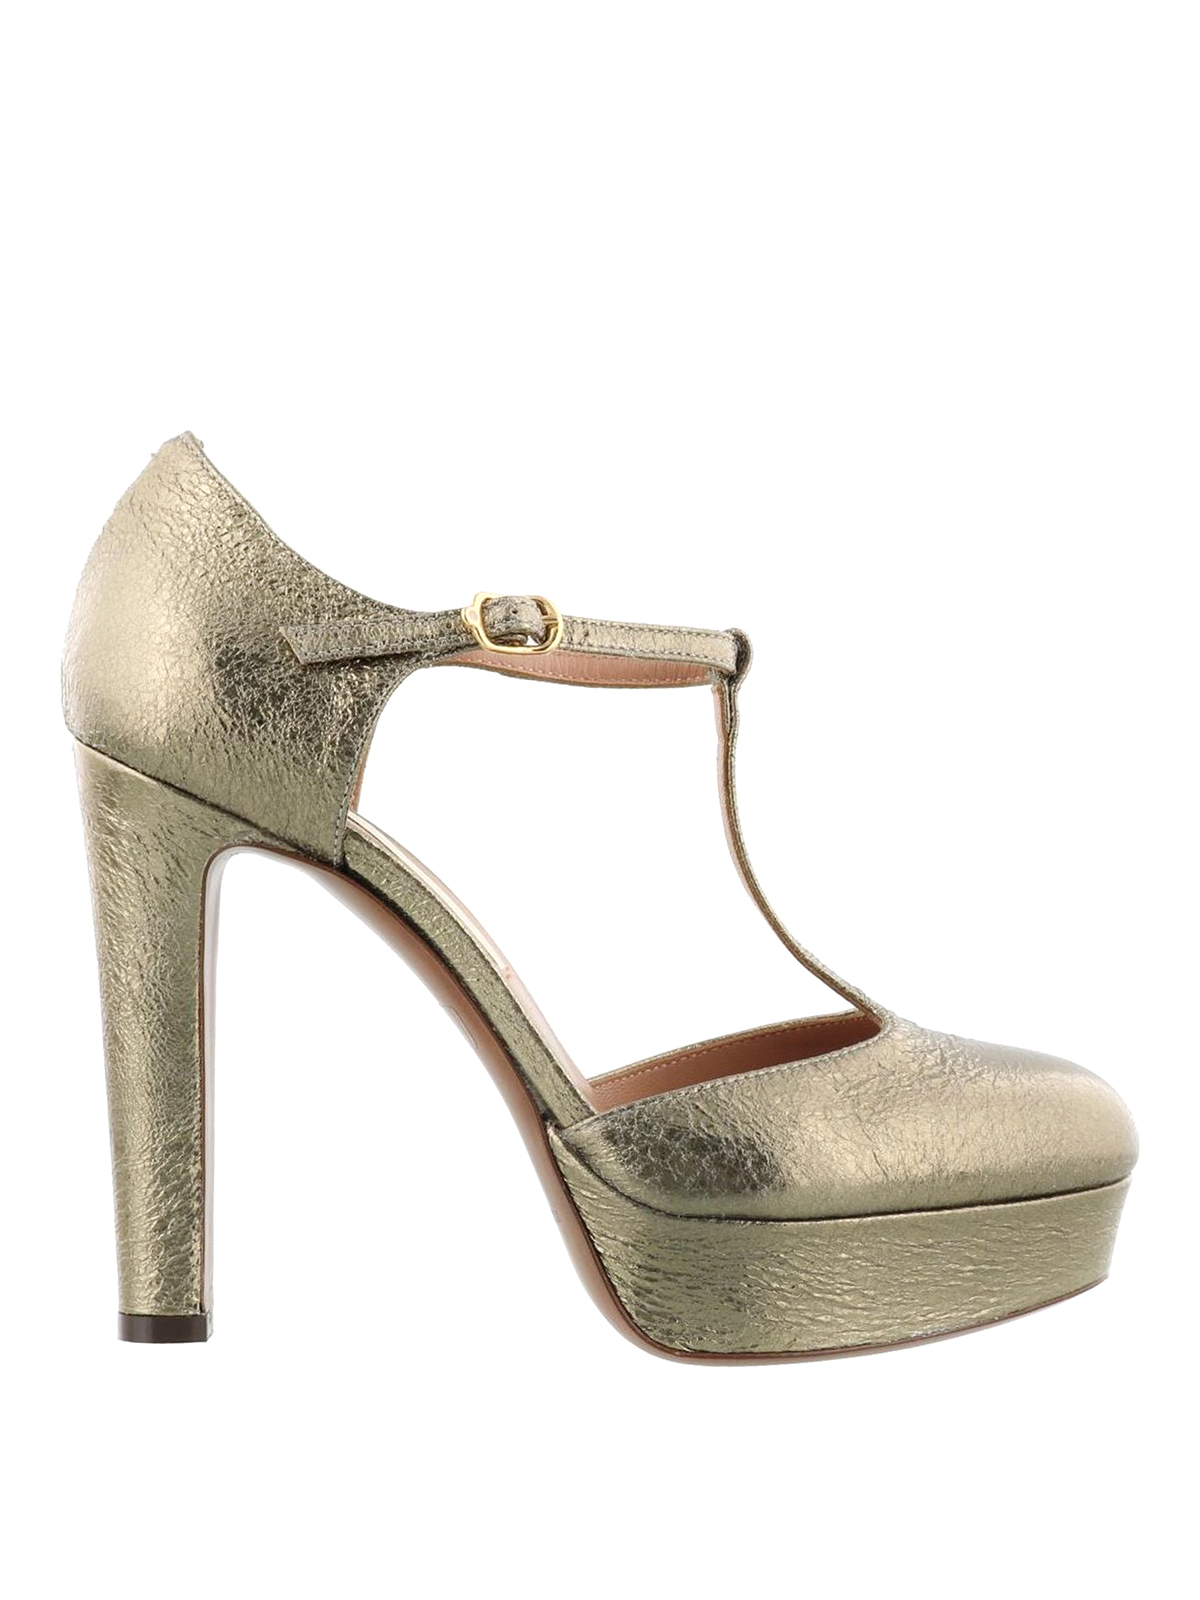 DOrsay court shoe - Metallic L'autre Chose